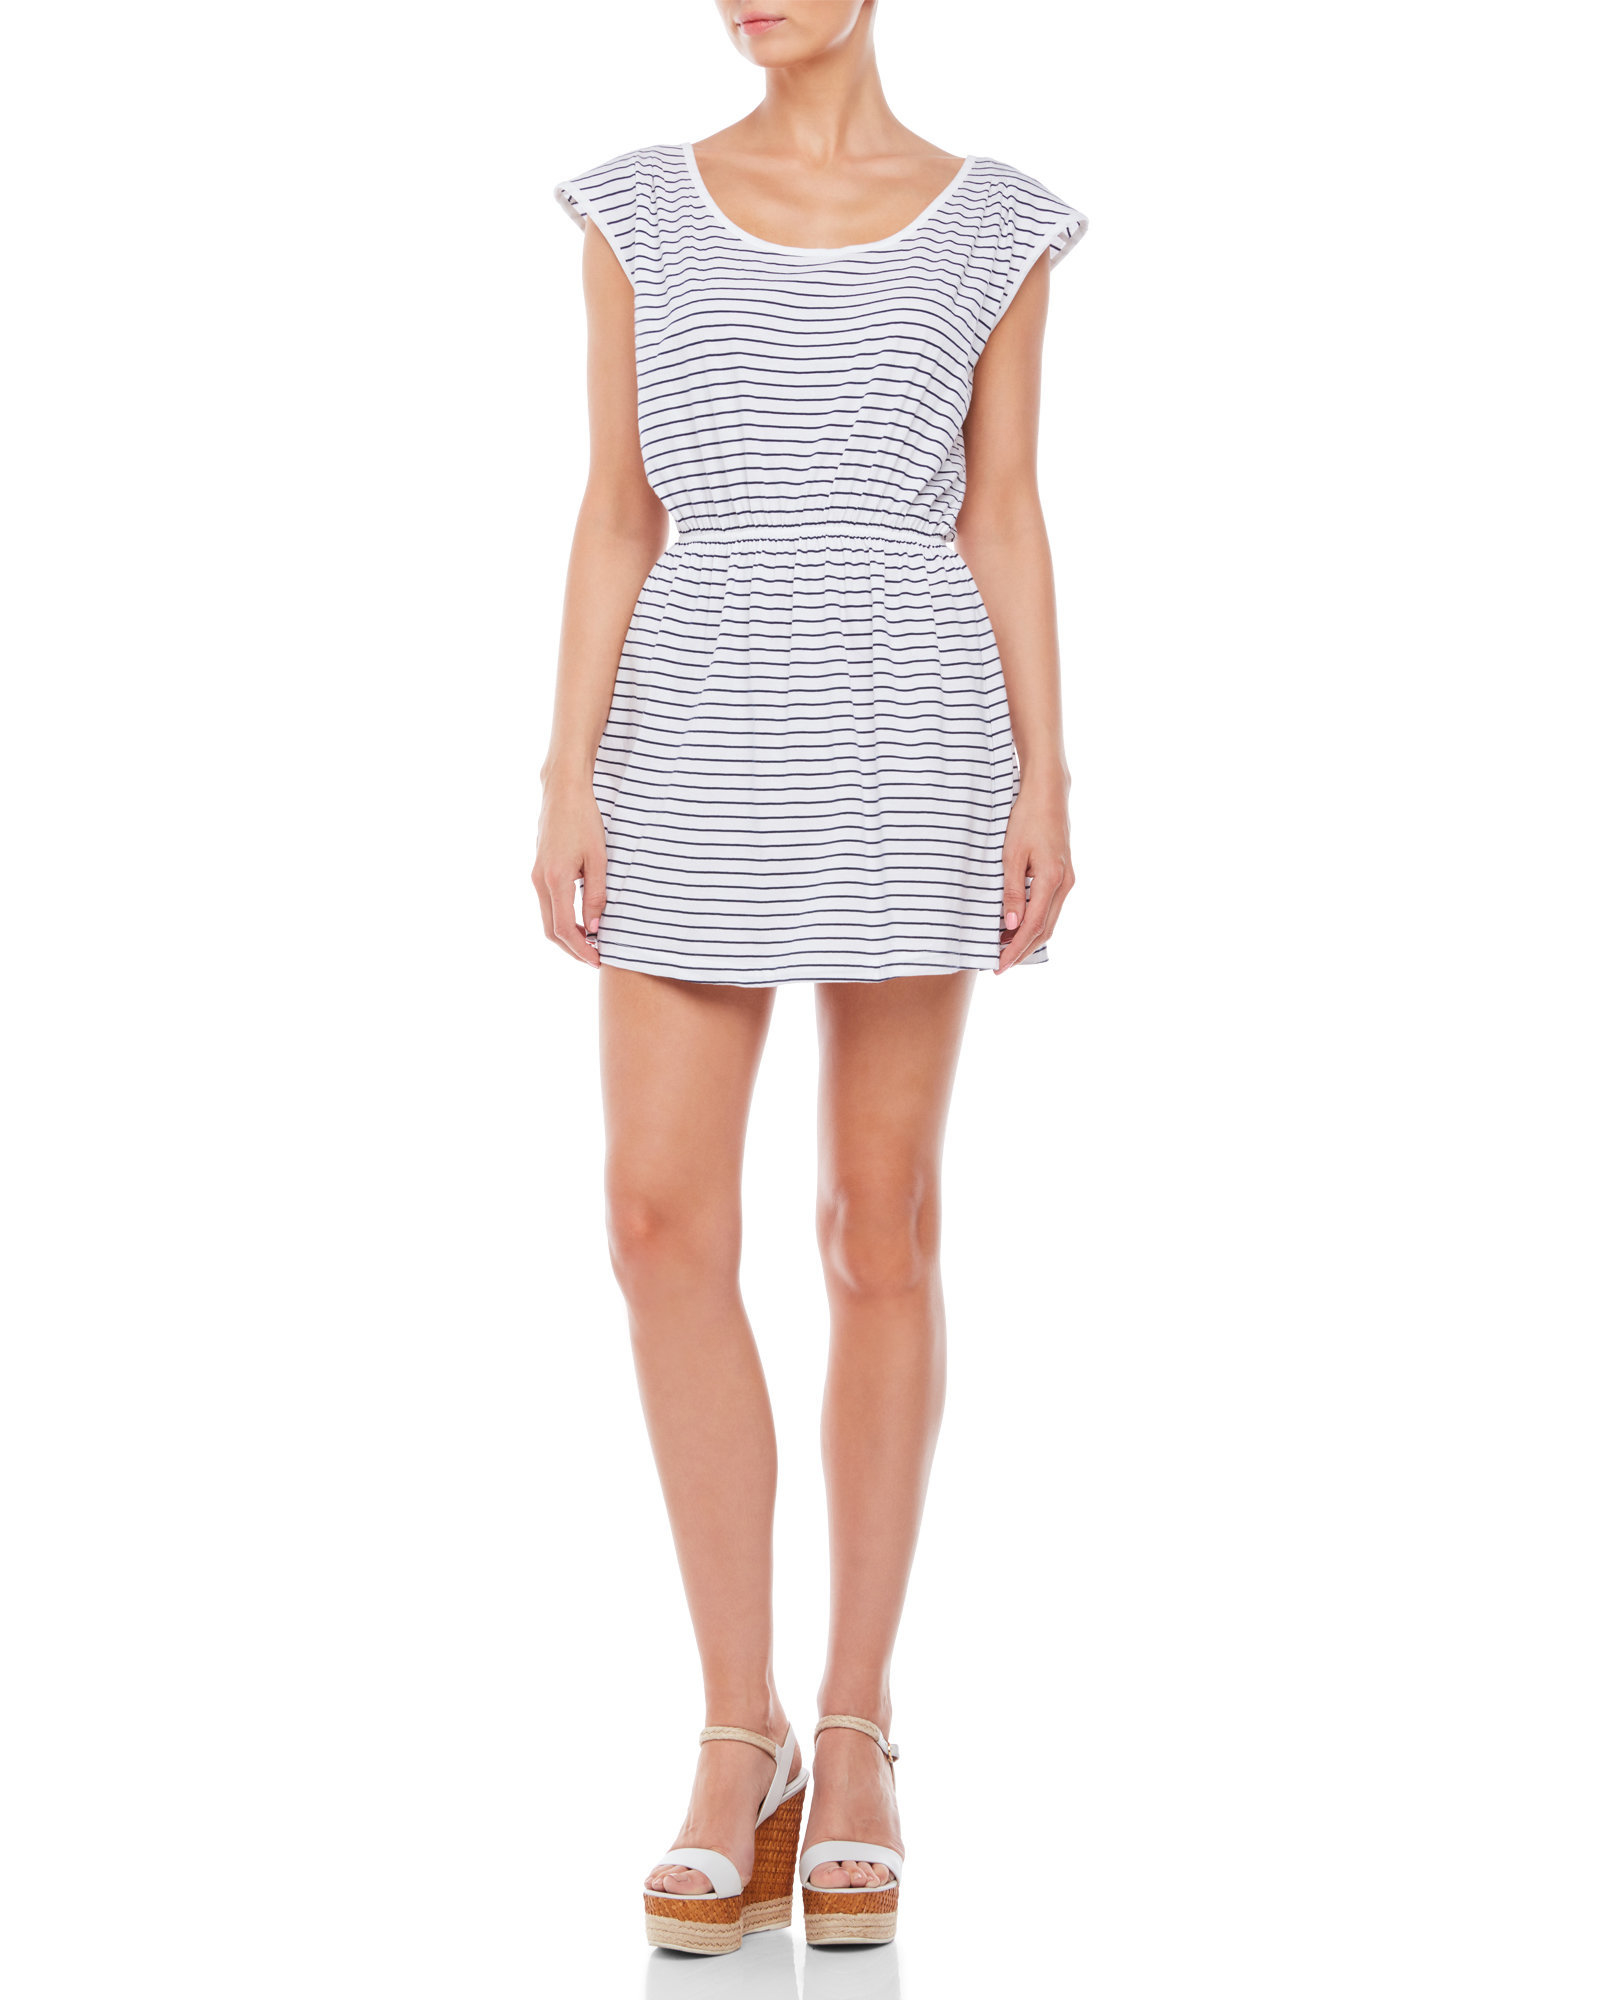 French Connection Material Girl Striped T Shirt Dress In